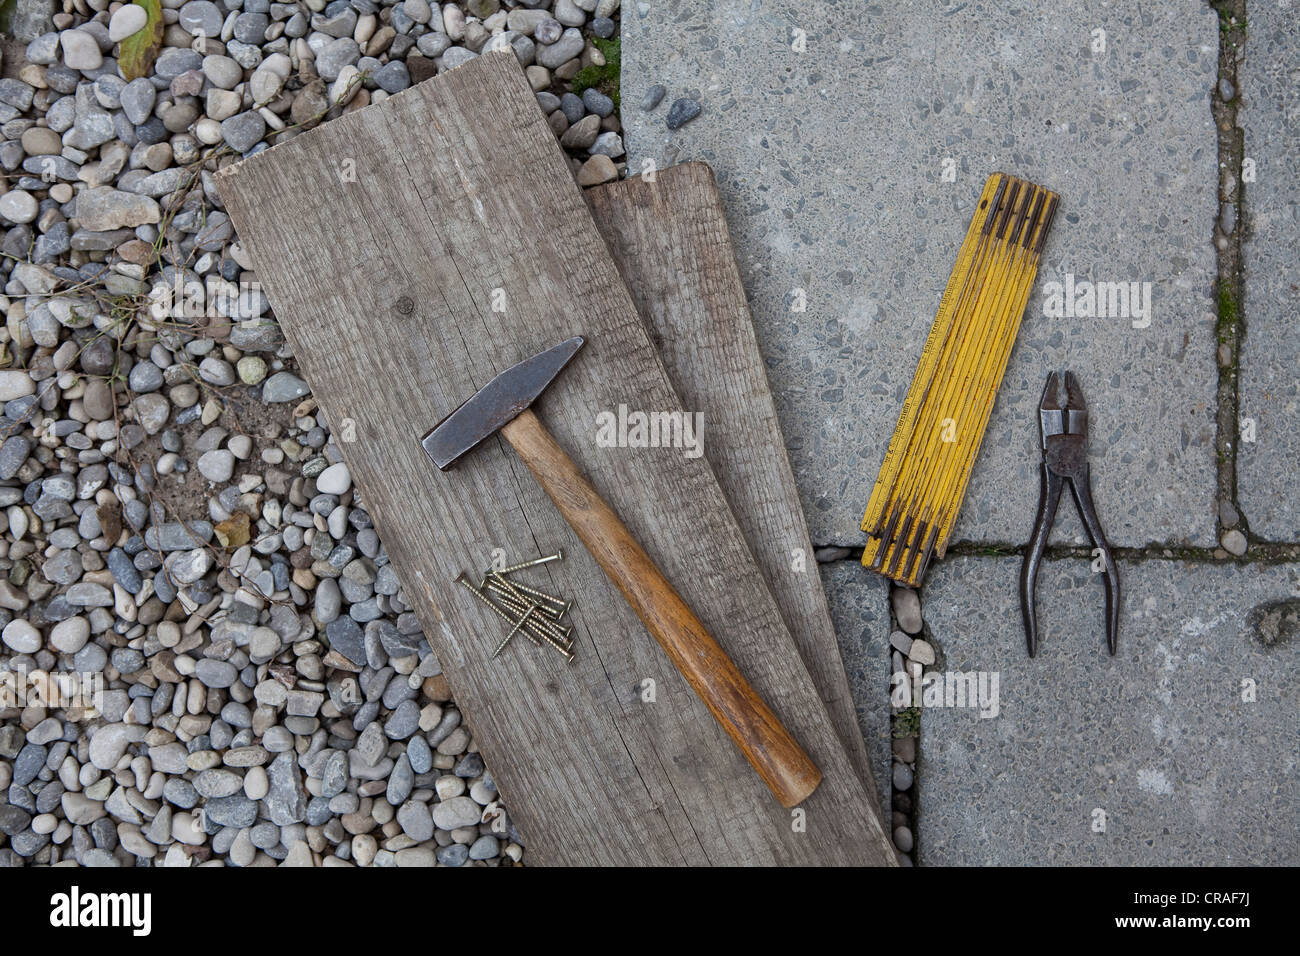 Hammer, folding rule, pliers and wooden boards - Stock Image